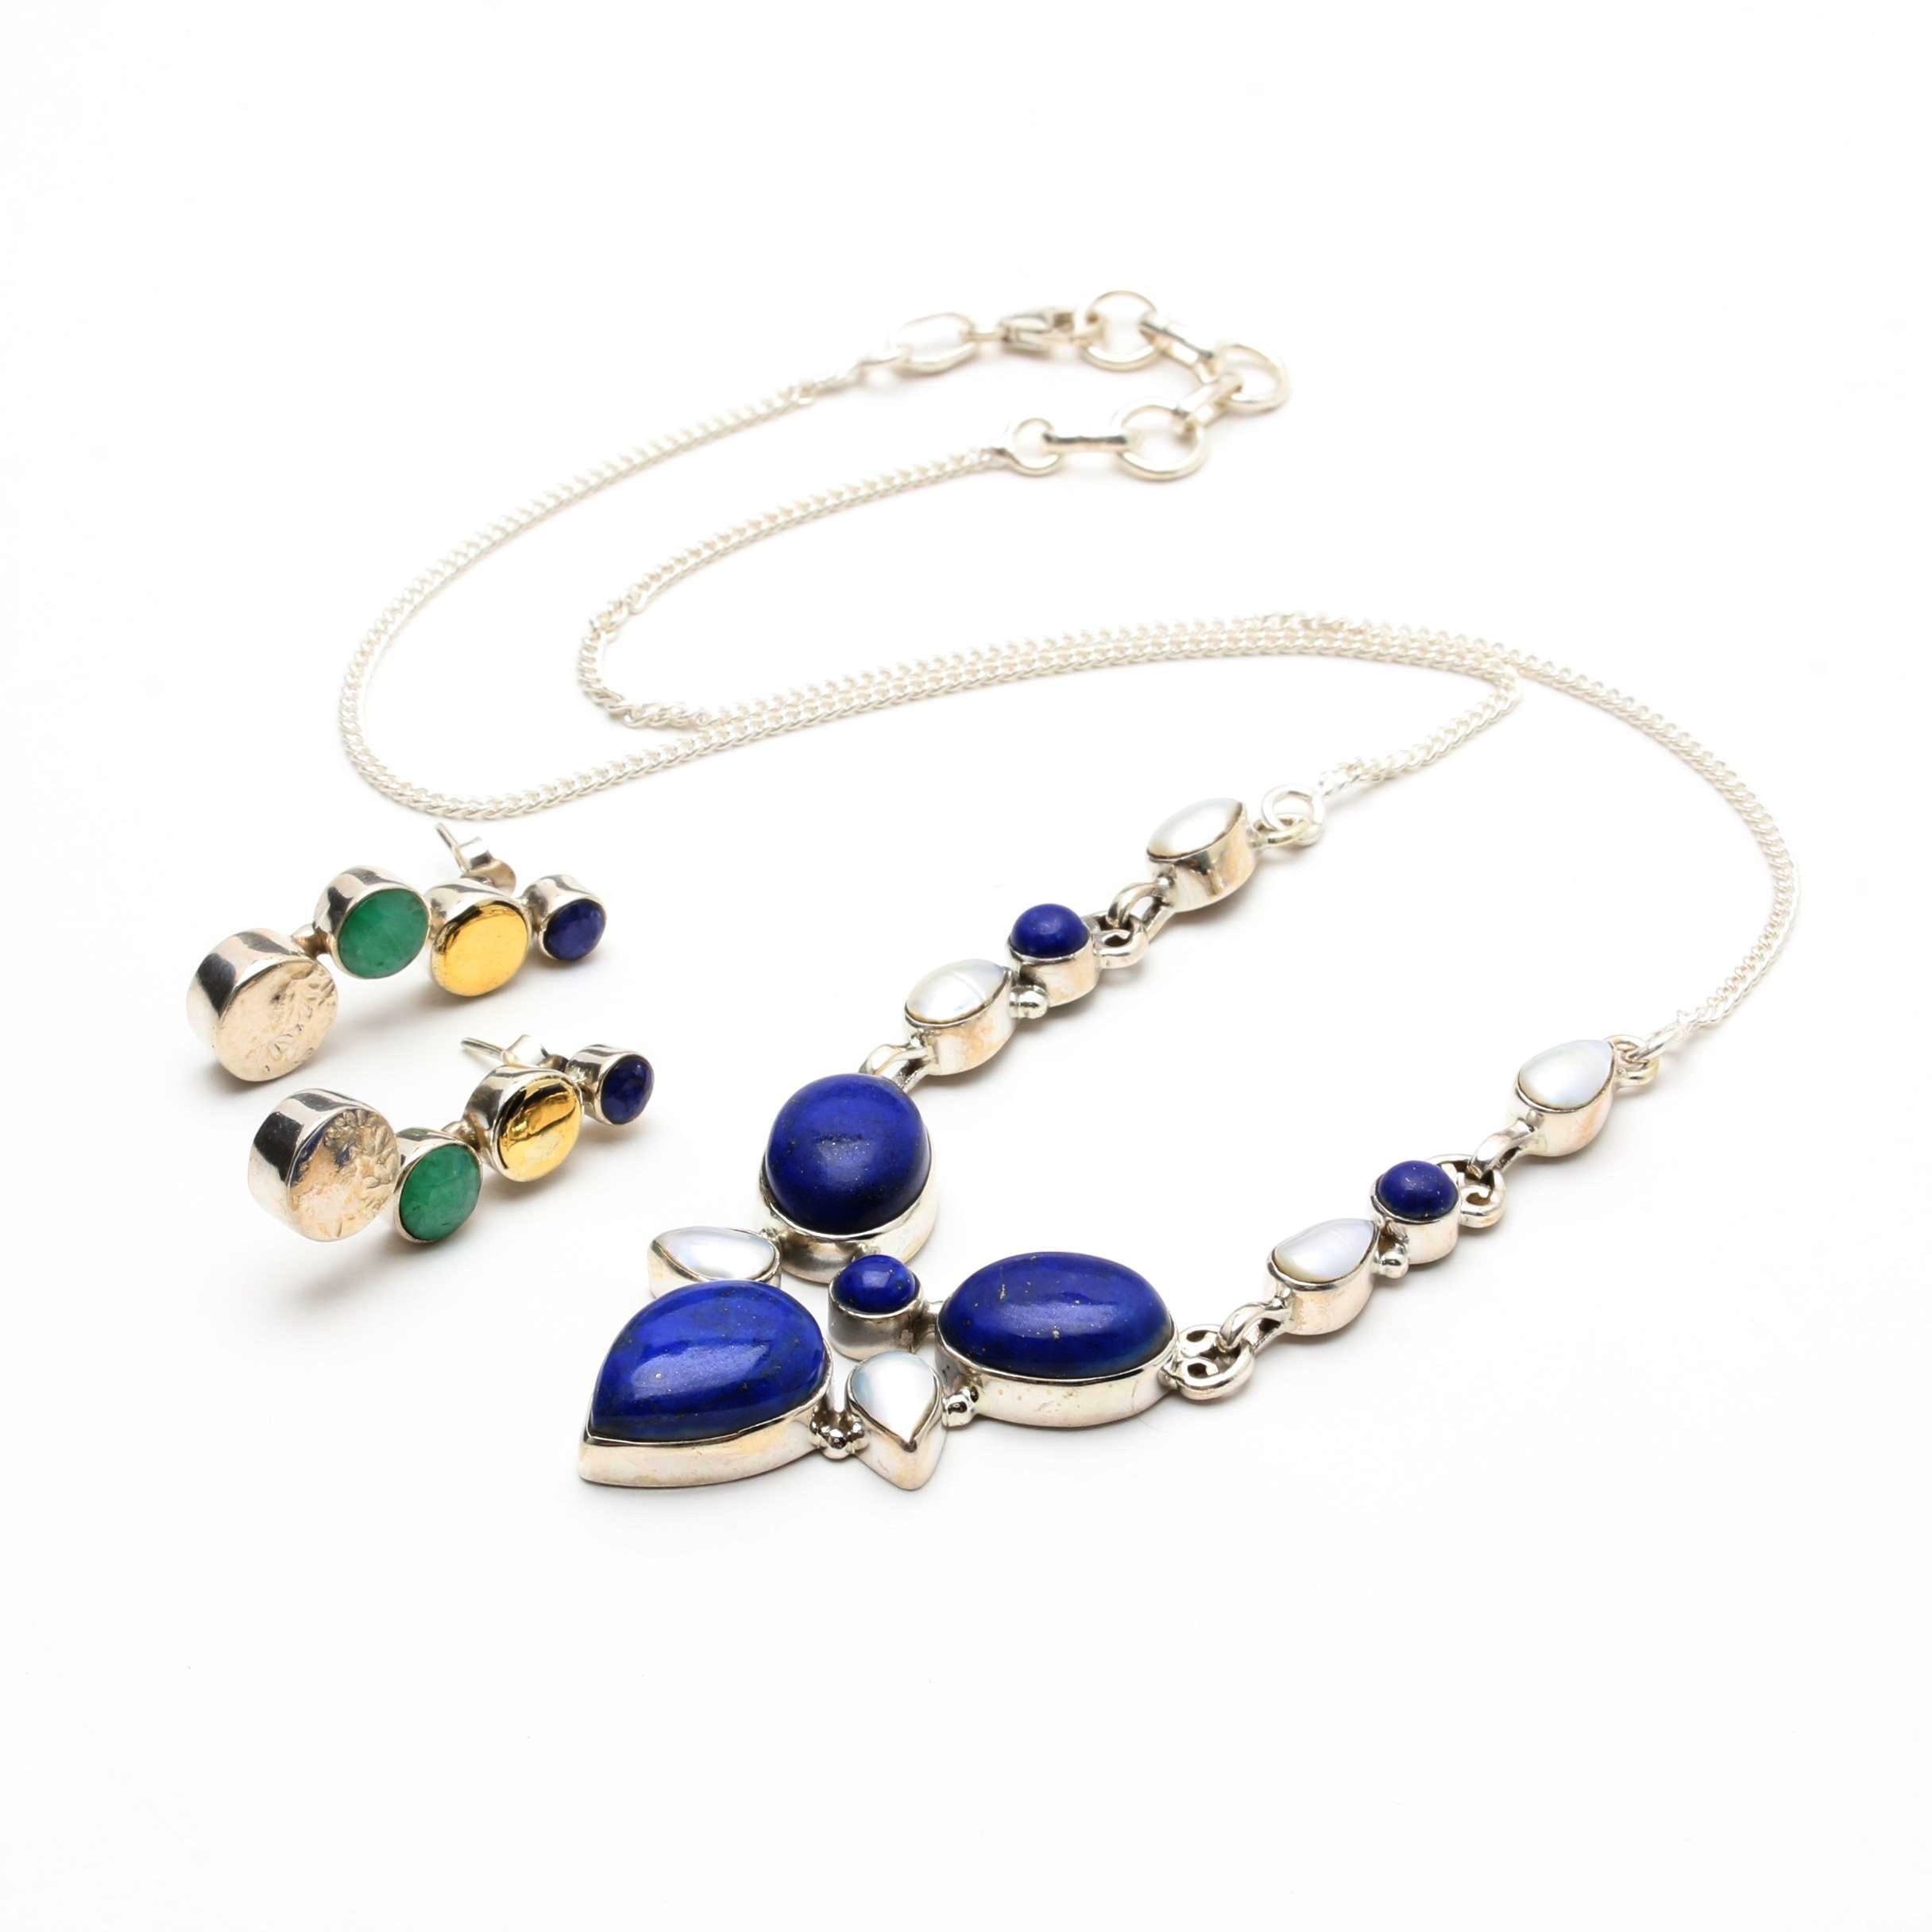 Sterling Silver Gemstone Jewelry Including Lapis Lazuli